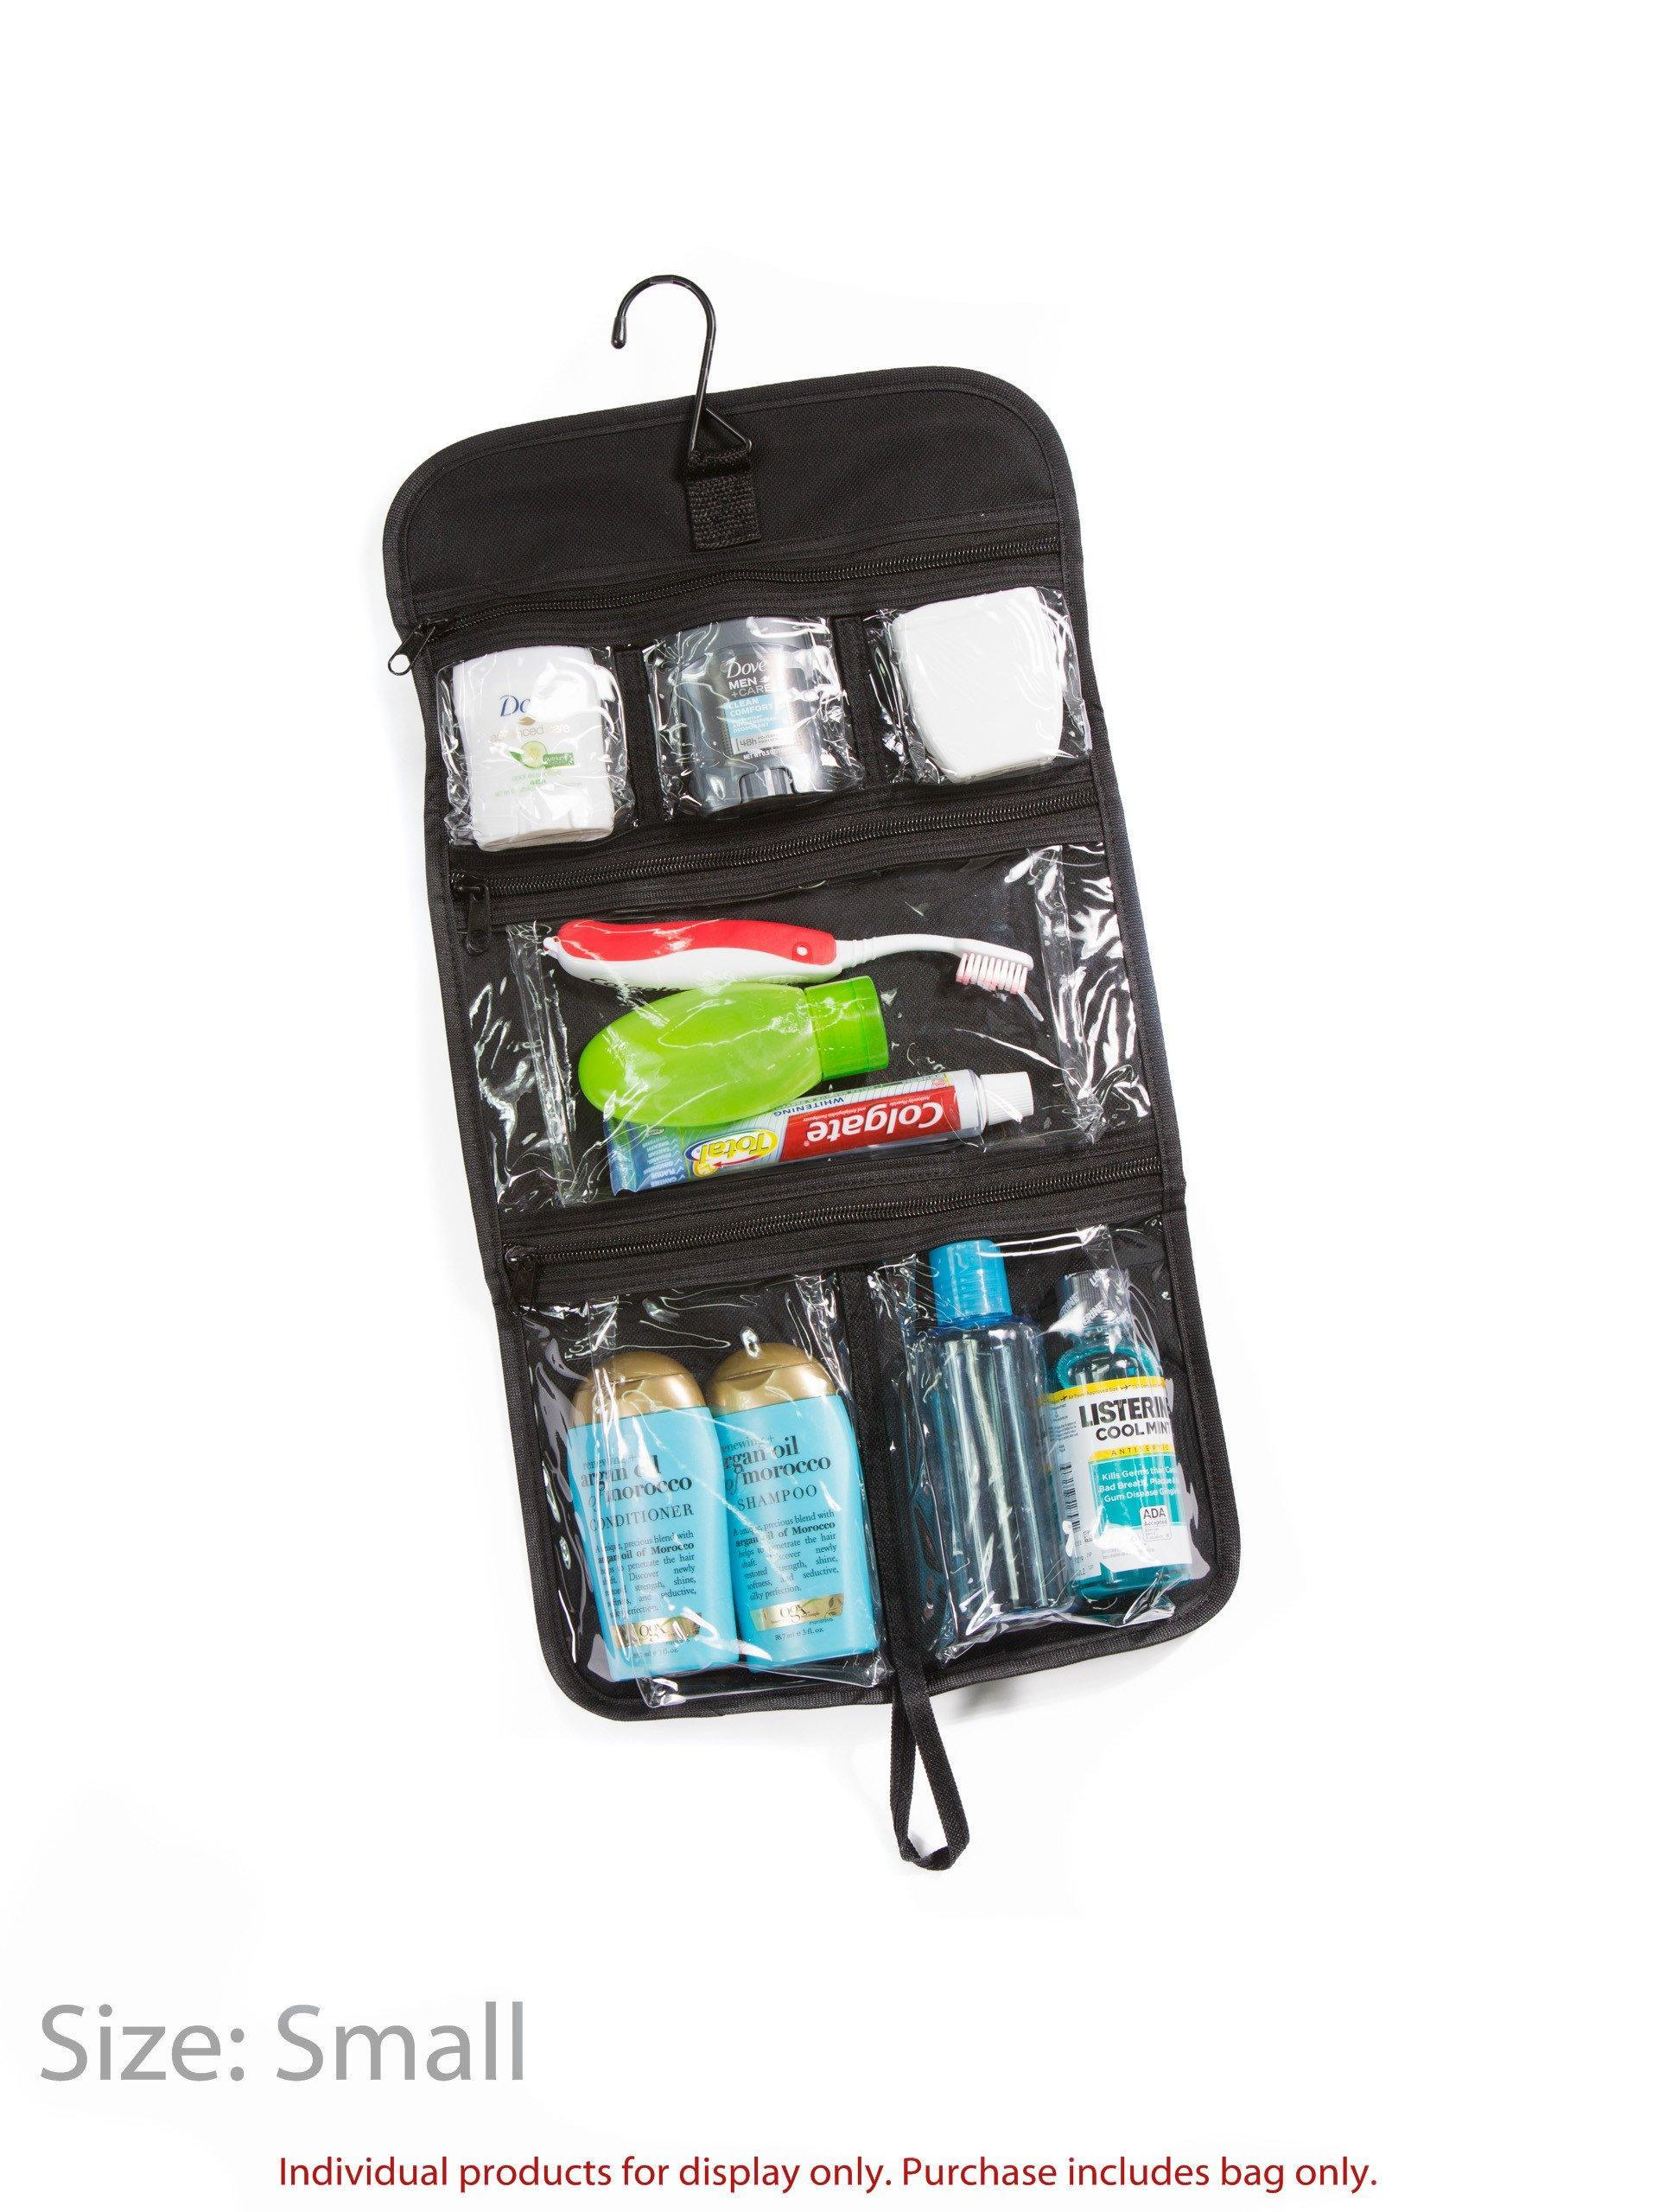 Home>Luggage - Expert Traveler Hanging Toiletry Bag - Designed By Travelers For Travelers